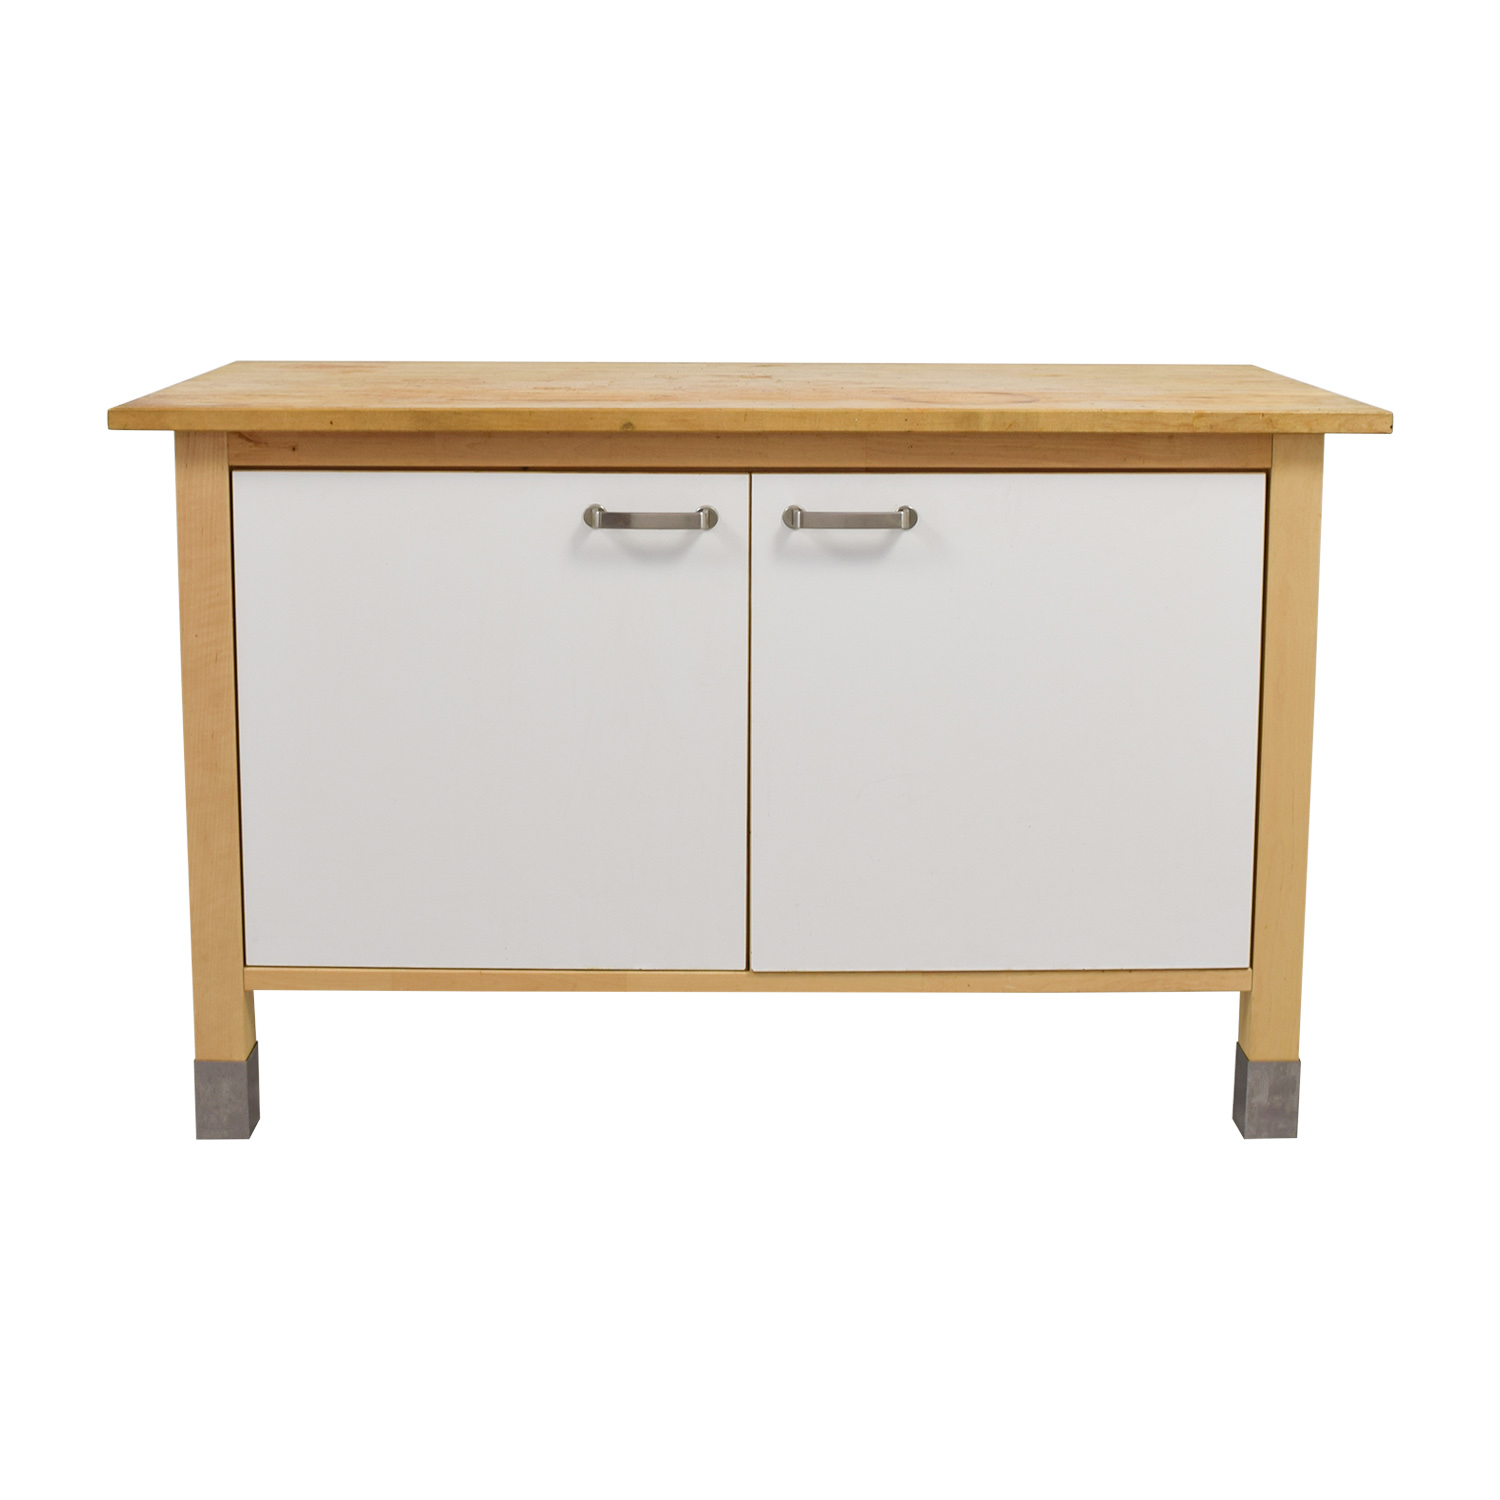 White Butcher Block Kitchen Table : 90% OFF - IKEA IKEA Kitchen Butcher Block and White Cabinet / Tables